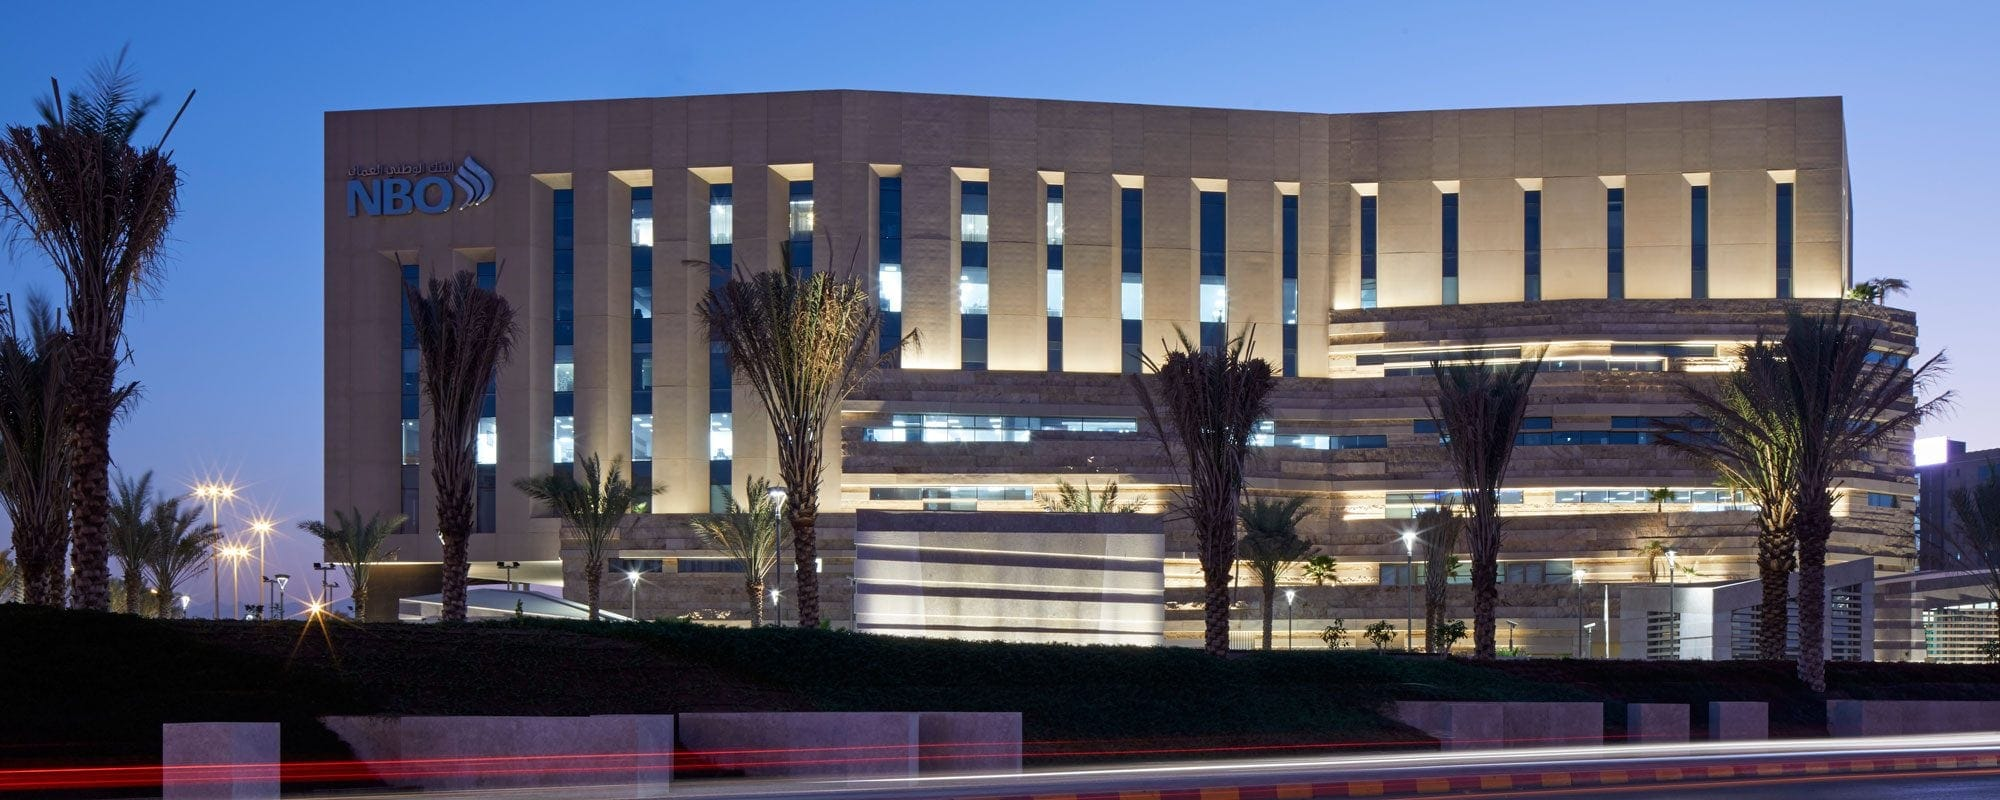 LOM architecture and design National Bank of Oman HQ facade night